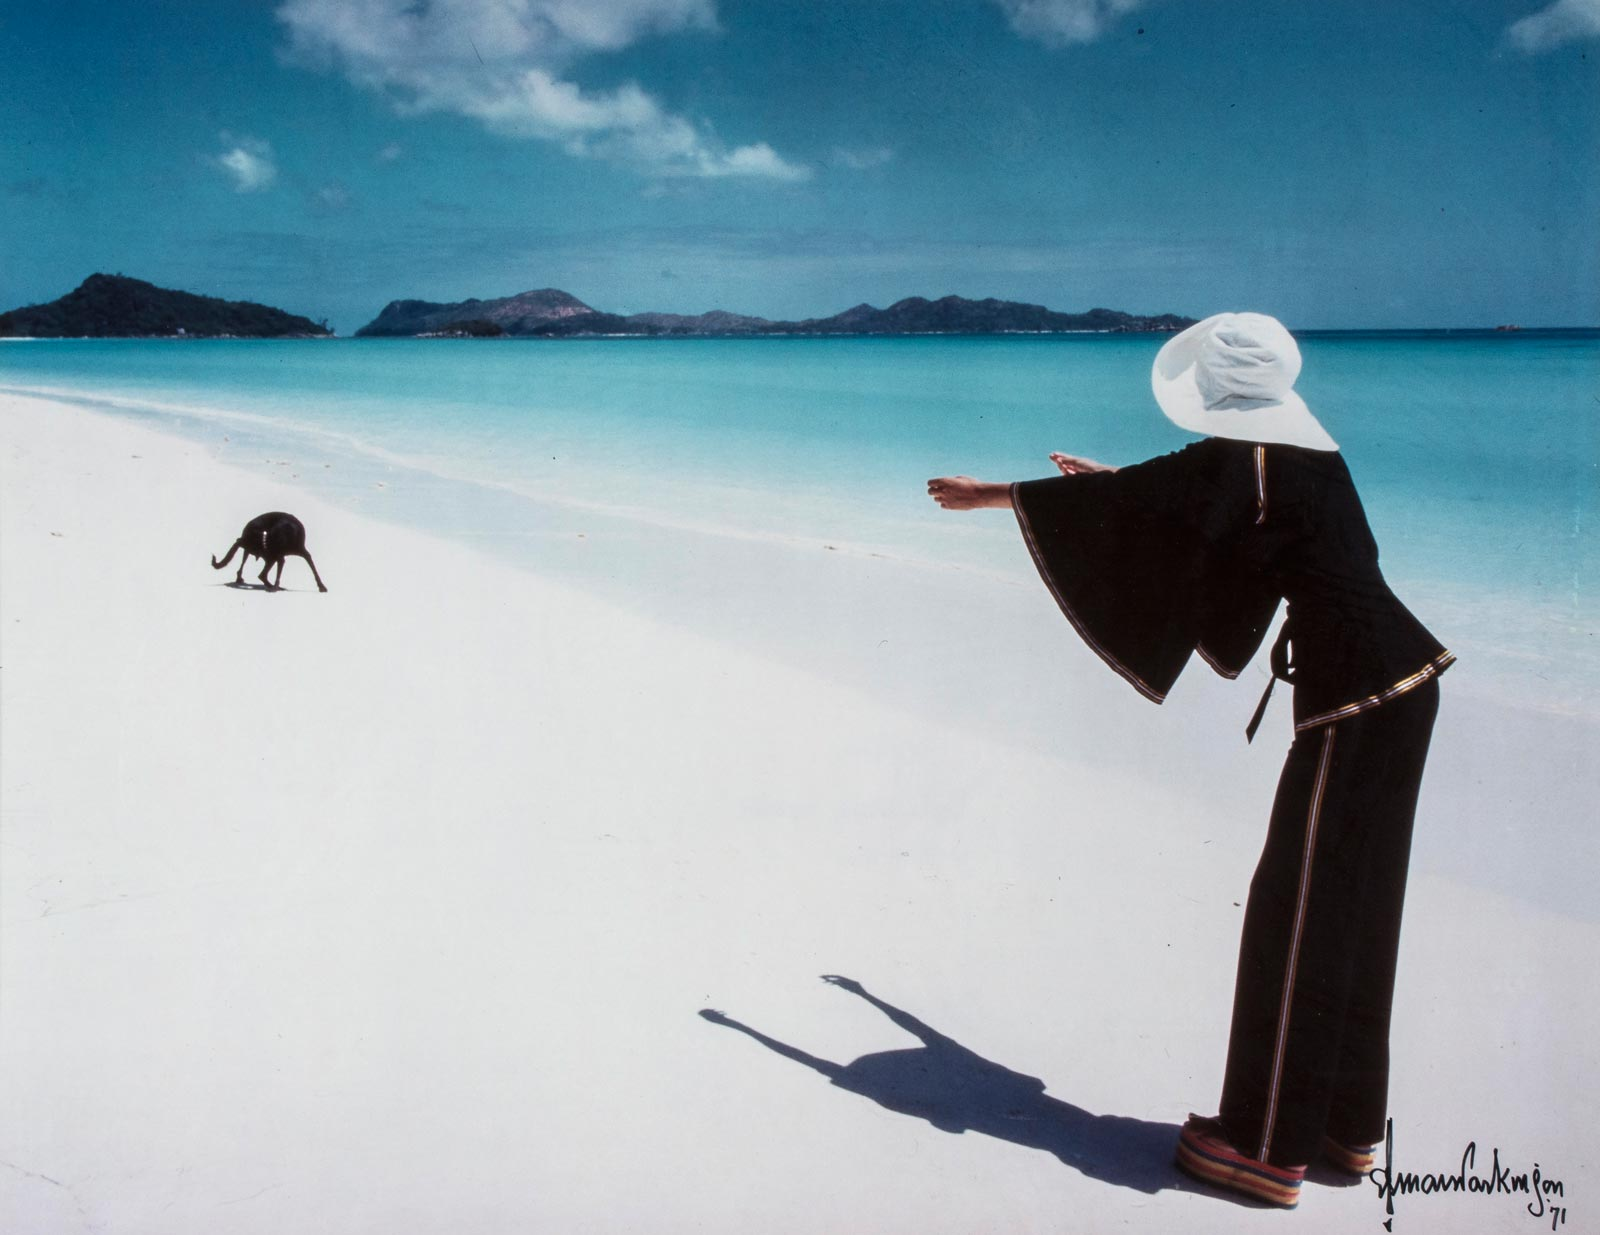 """Dog Friday"", Praslin Island, Seychelles for British Vogue, 1971, Norman Parkinson (1913-1990)."